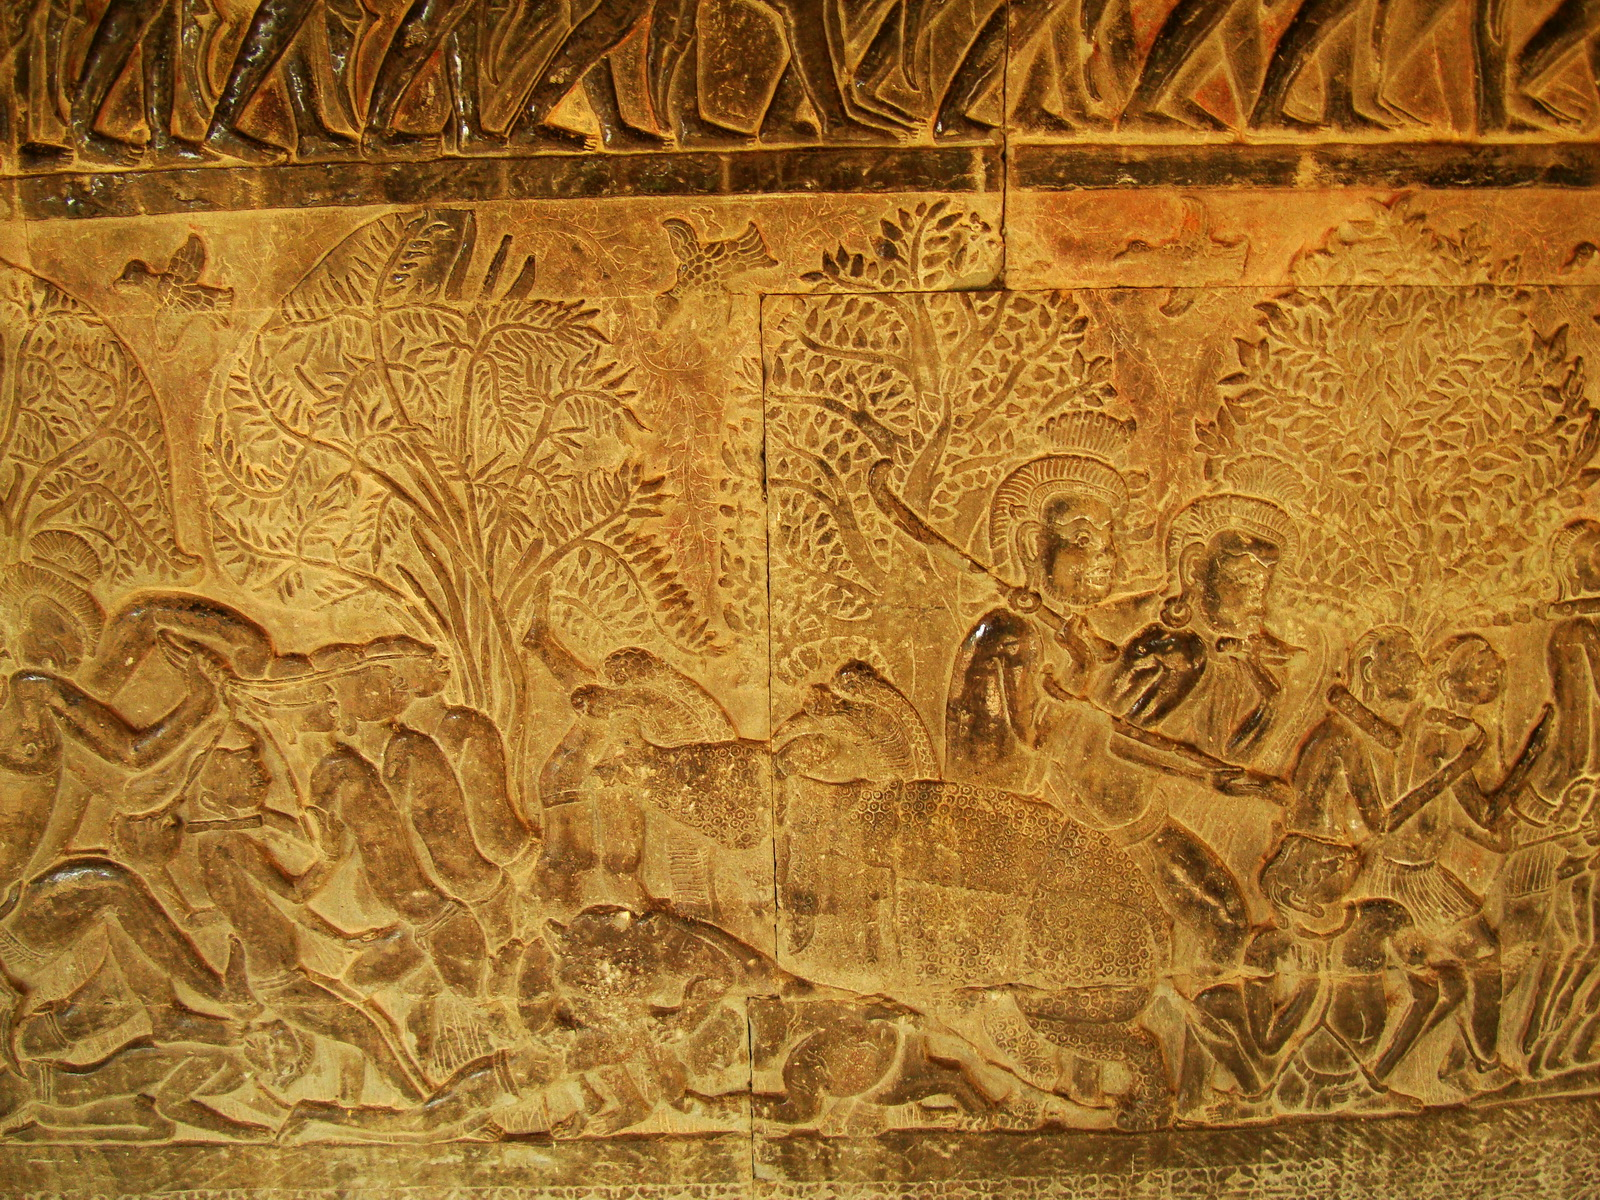 Angkor Wat Bas relief S Gallery E Wing Heavens and Hells 53